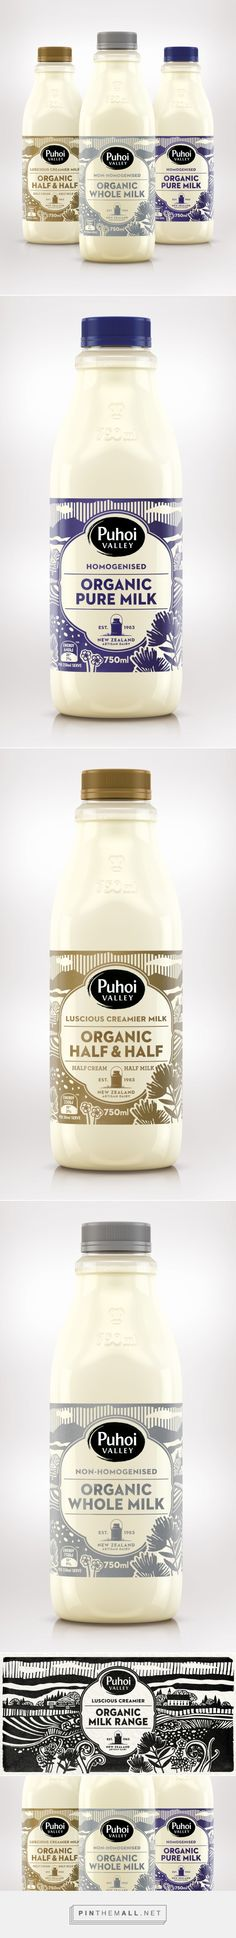 Puhoi Organic Milk by Unified Brands